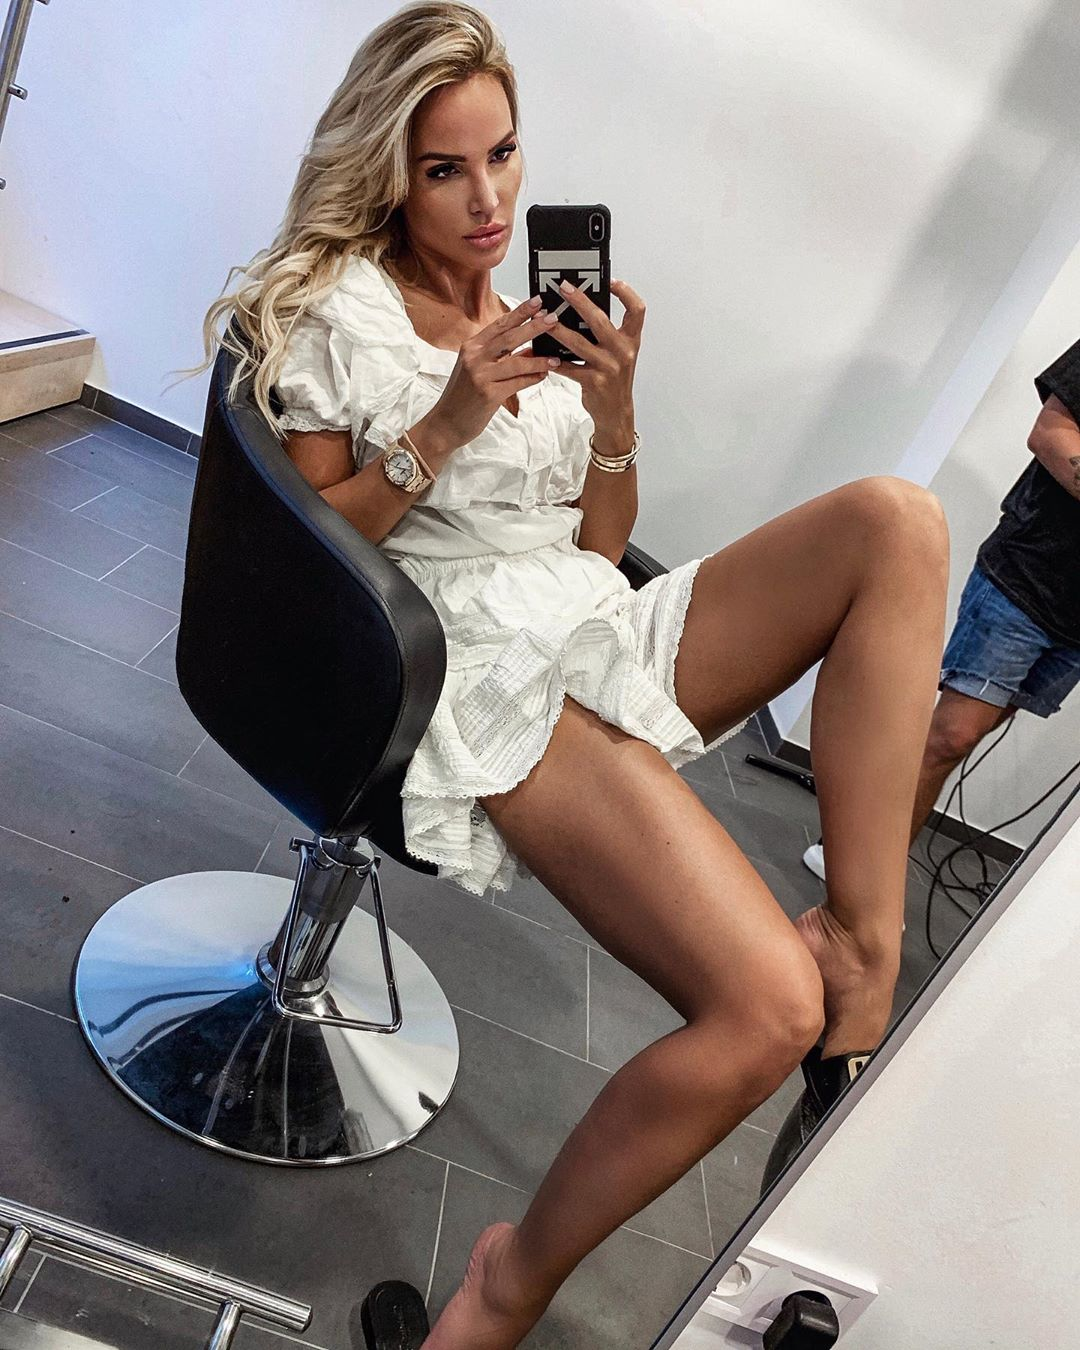 10 PERFECT SELFIES BY DR LINDA ZIMANY - Tabloid Nation